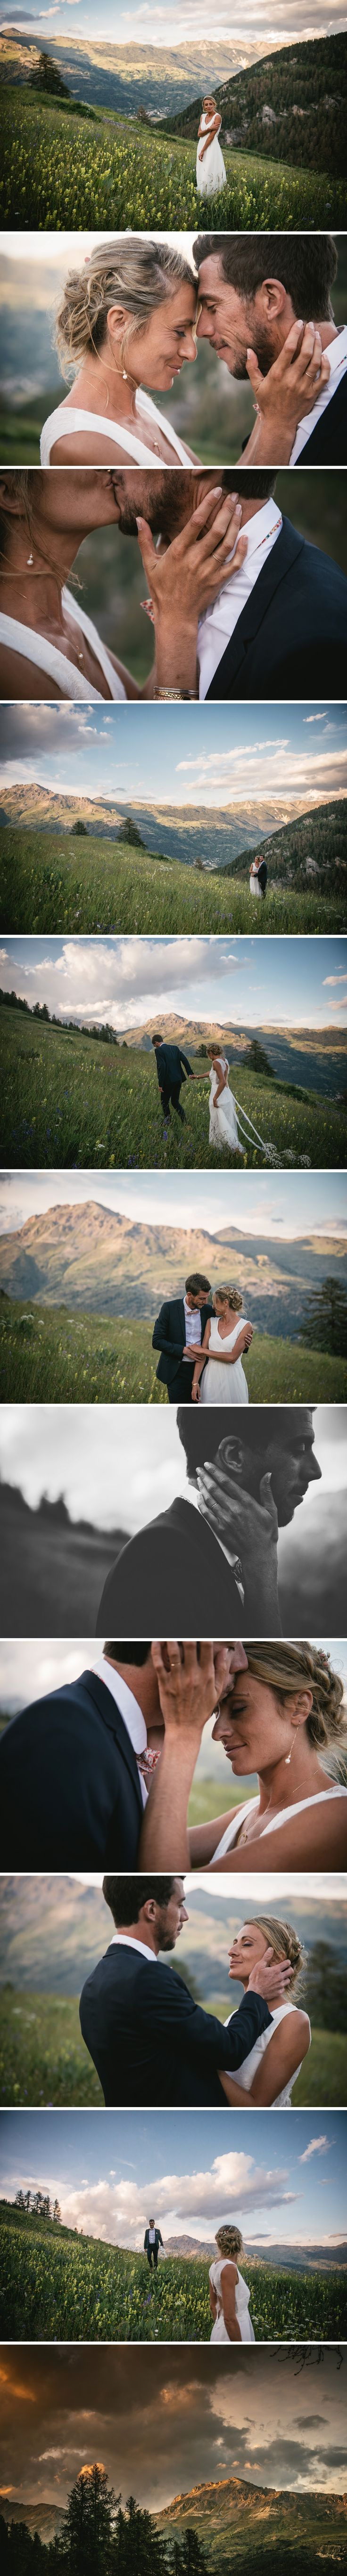 Couple pictures on top of a mountain on their wedding day - wedding dress by Kaa Couture - Groom's bowtie by Le Colonel Moutarde - Zephyr & Luna photography